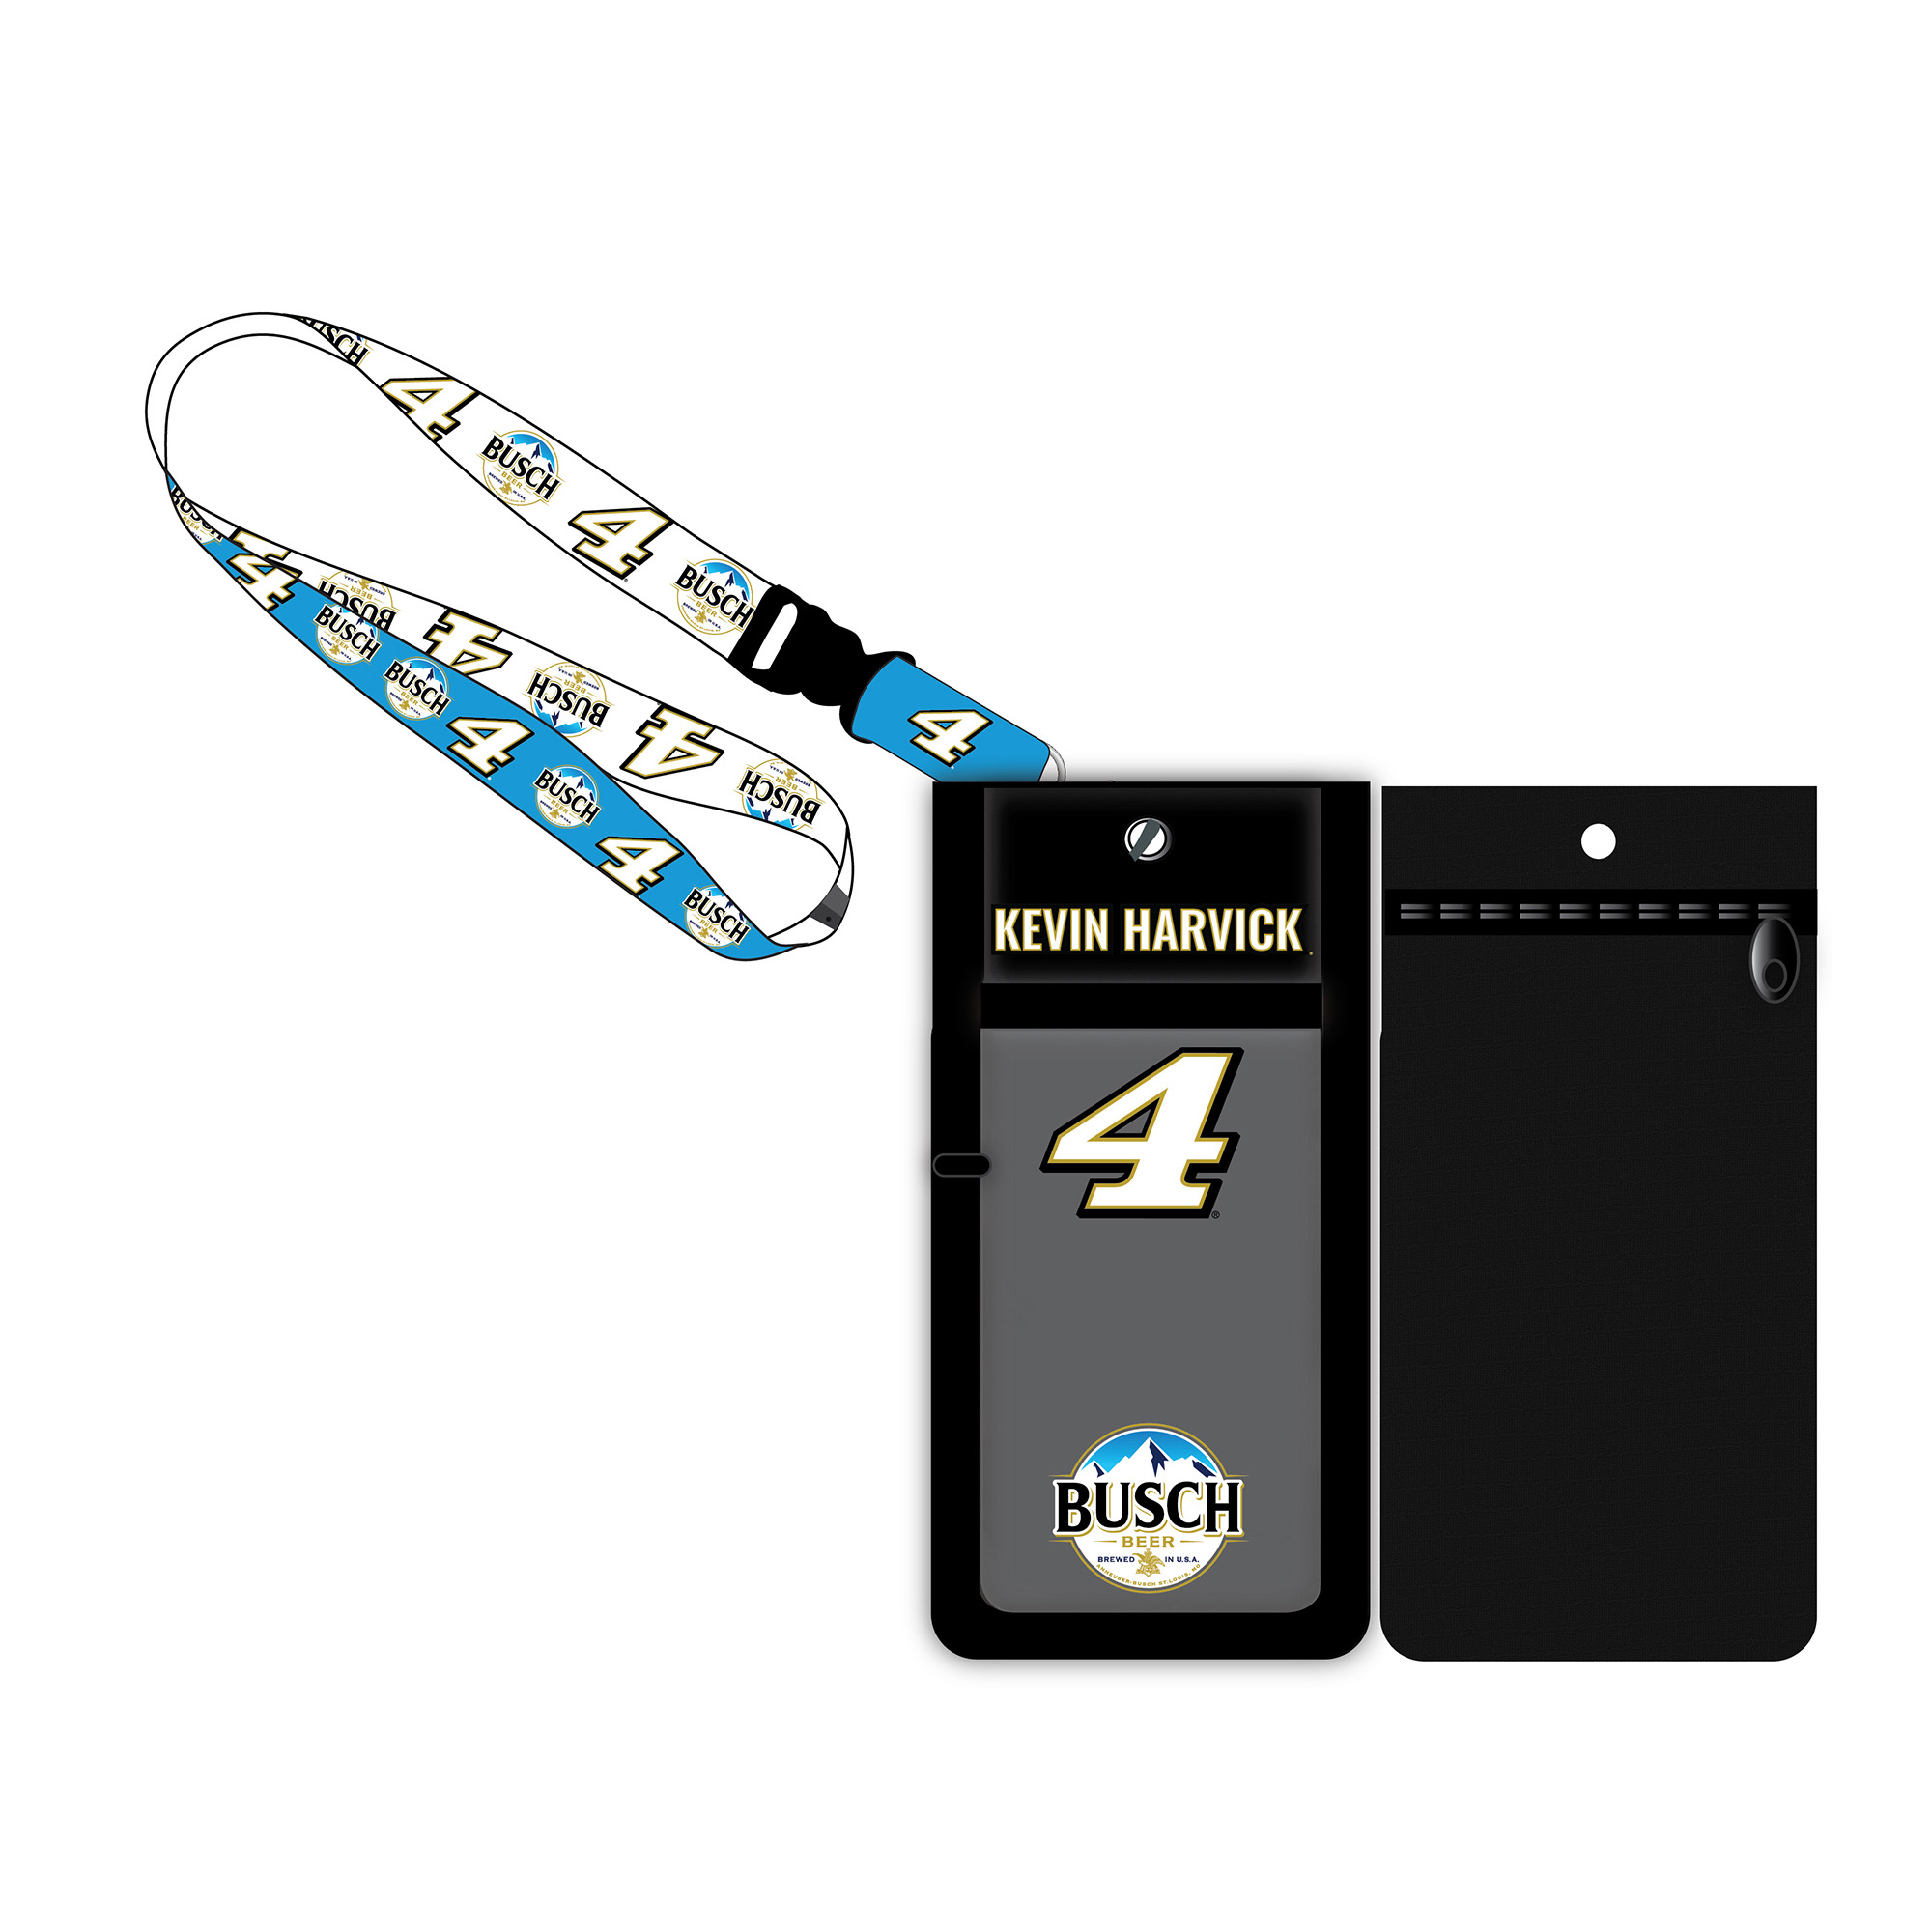 Kevin Harvick Deluxe Credential Holder with Lanyard - No Size